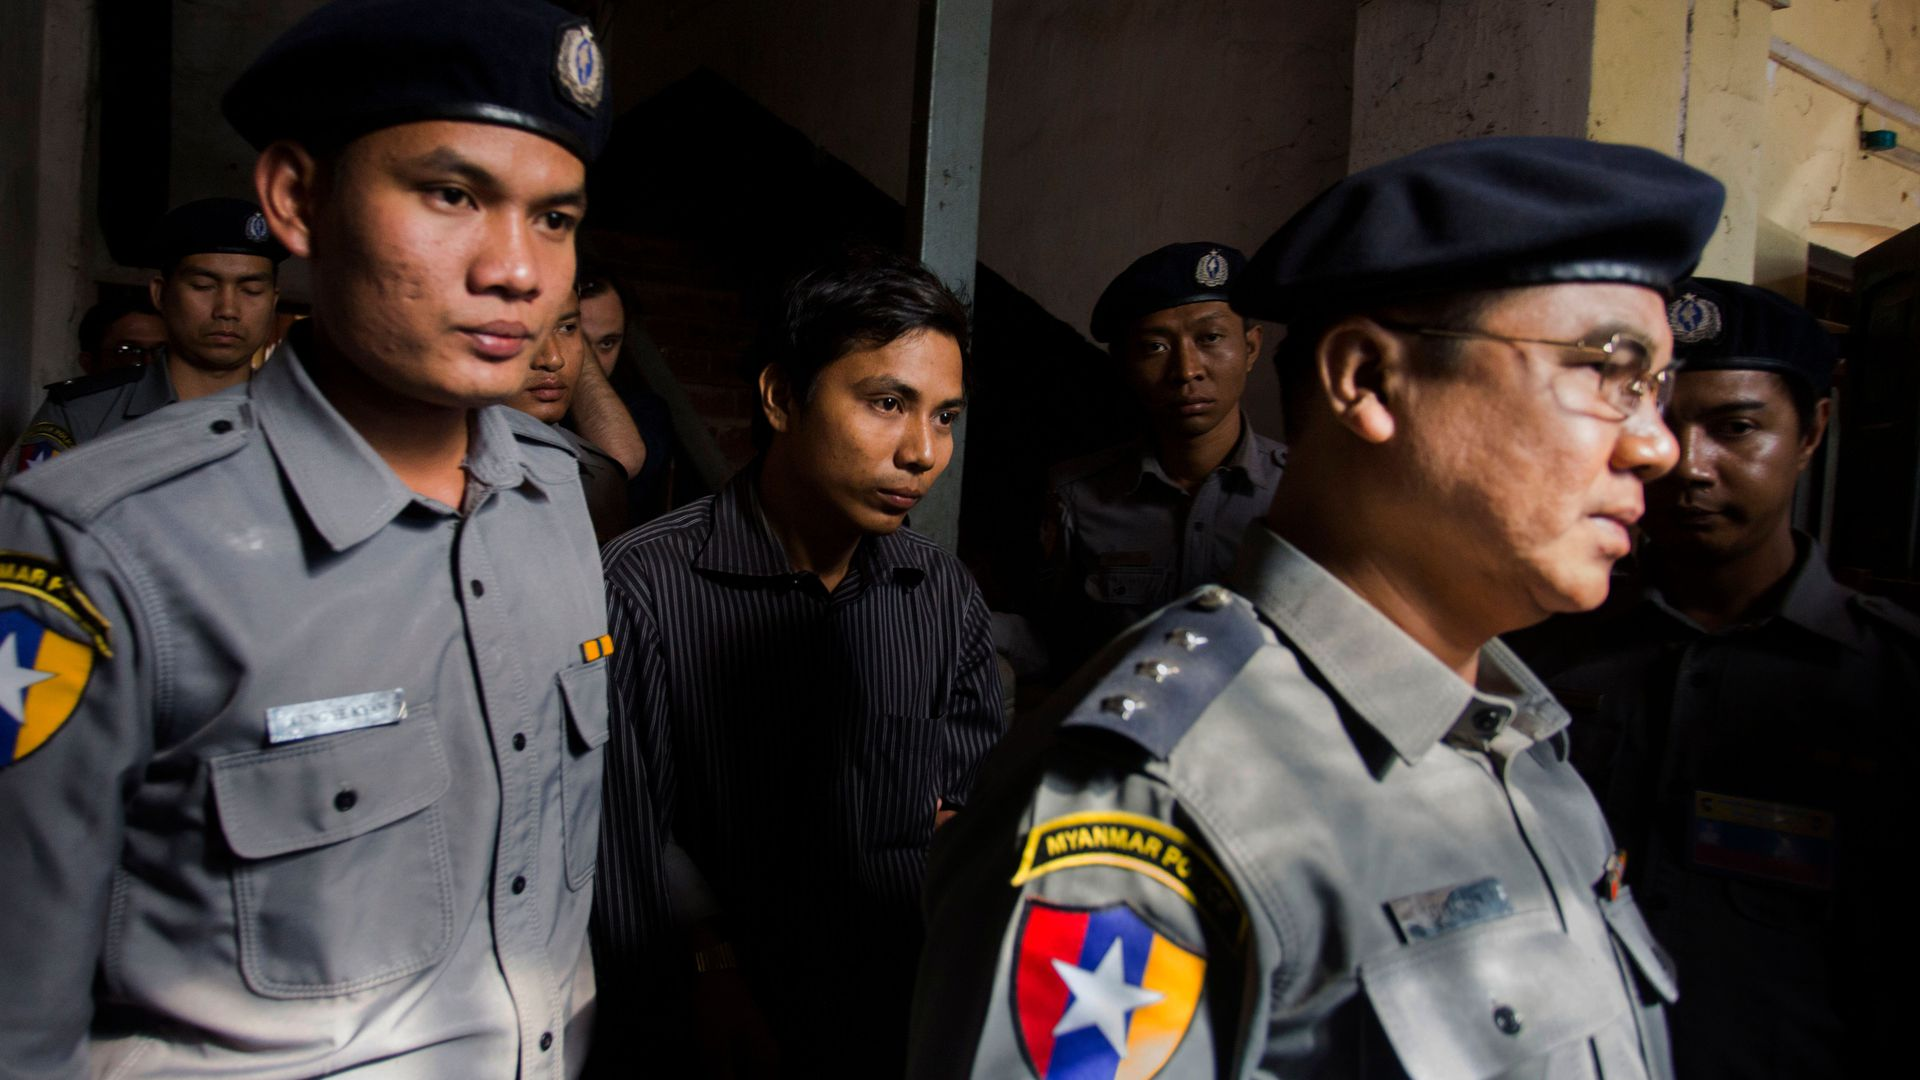 Reuters journalist Kyaw Soe Oo is escorted by Myanmar police outside the northern district court in Yangon